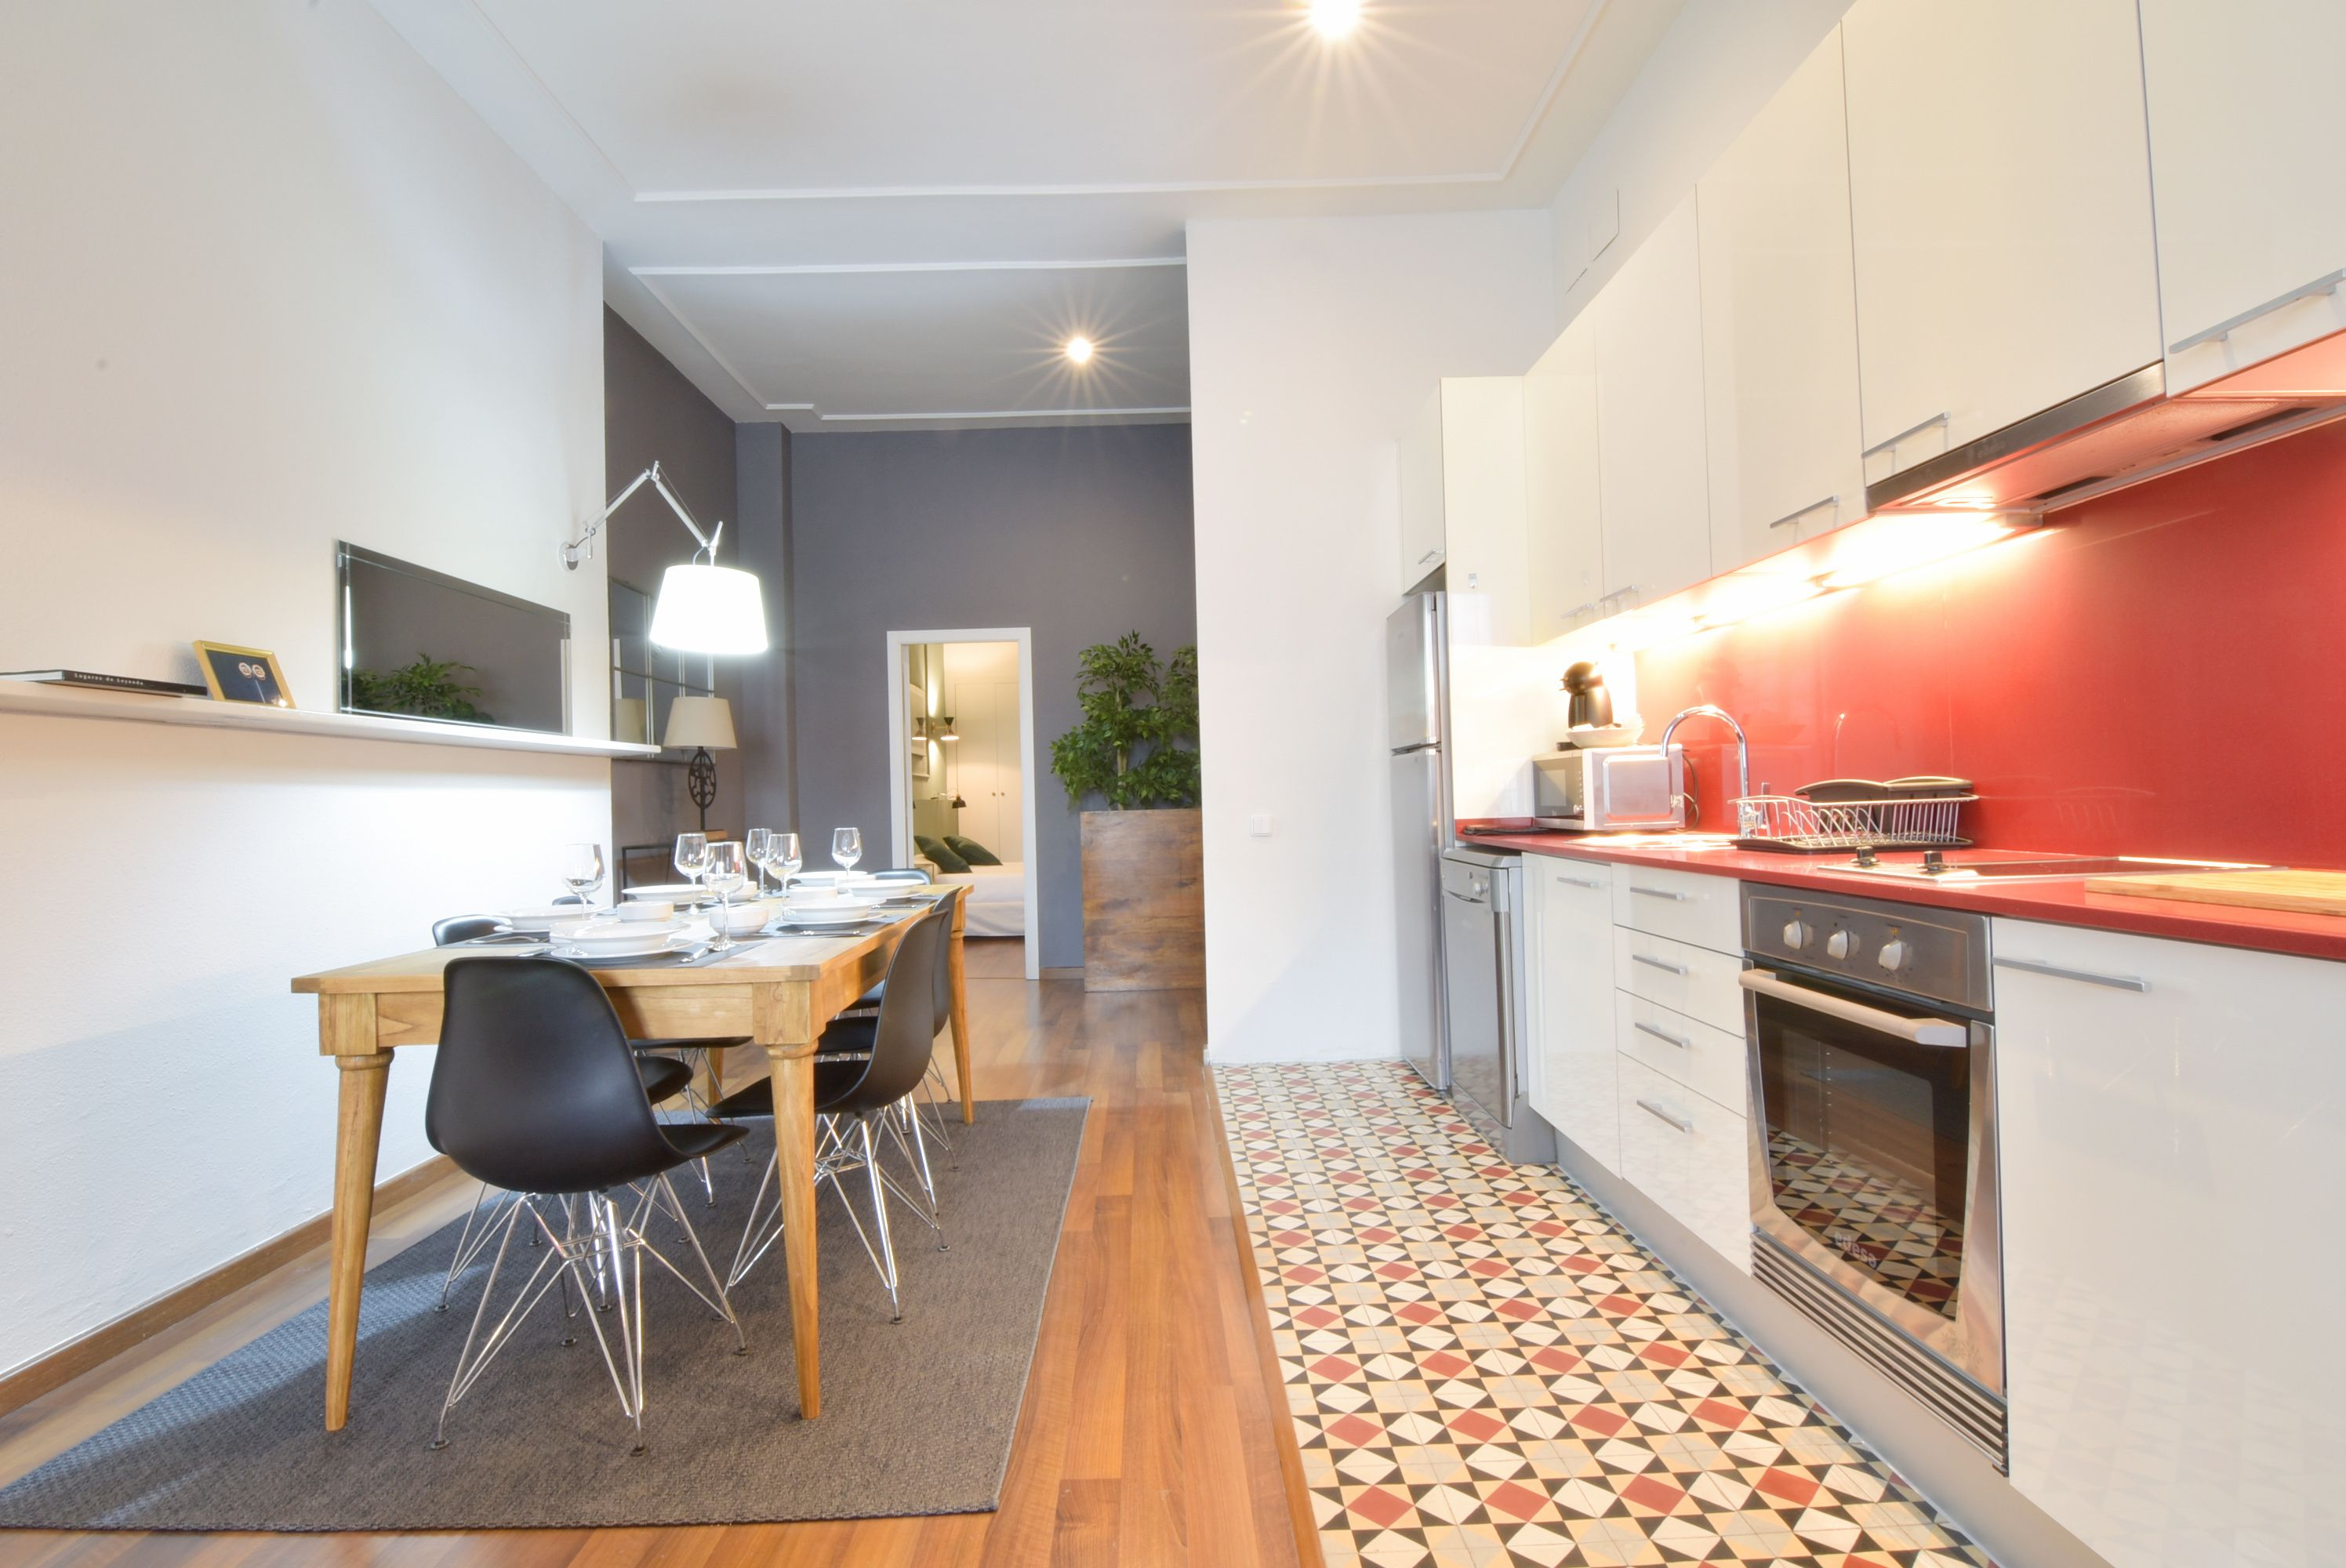 2. Cocina Comedor - Kitchen and Dining room | 1840 Apartments